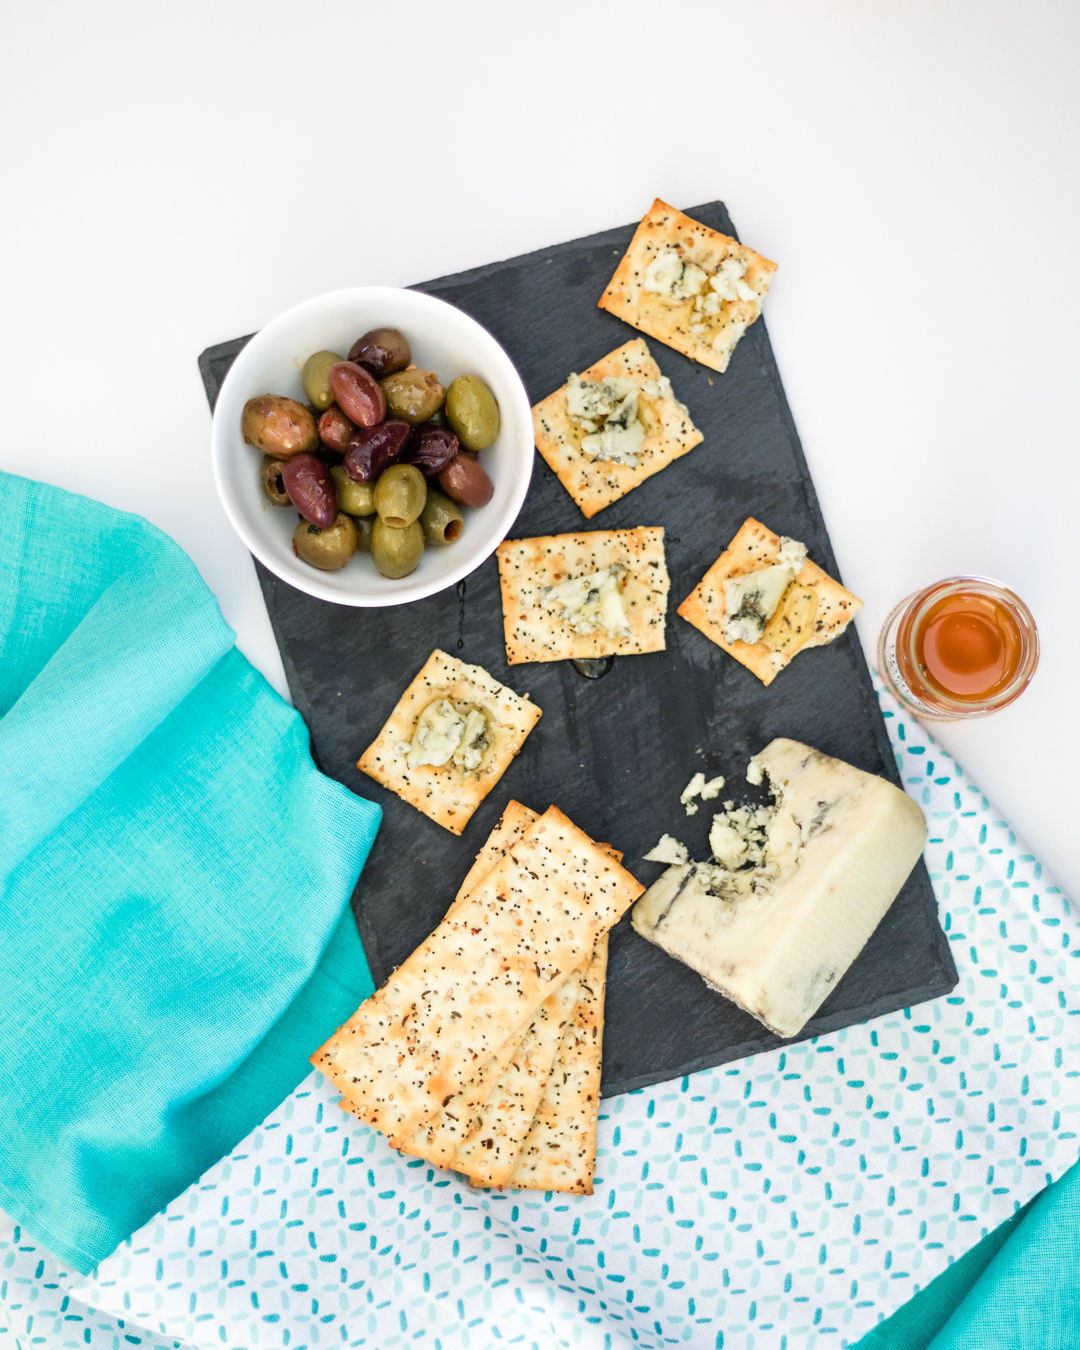 Step 4 - Spread blue cheese onto your flatbread crisps and top each with a yummy drizzle of honey.